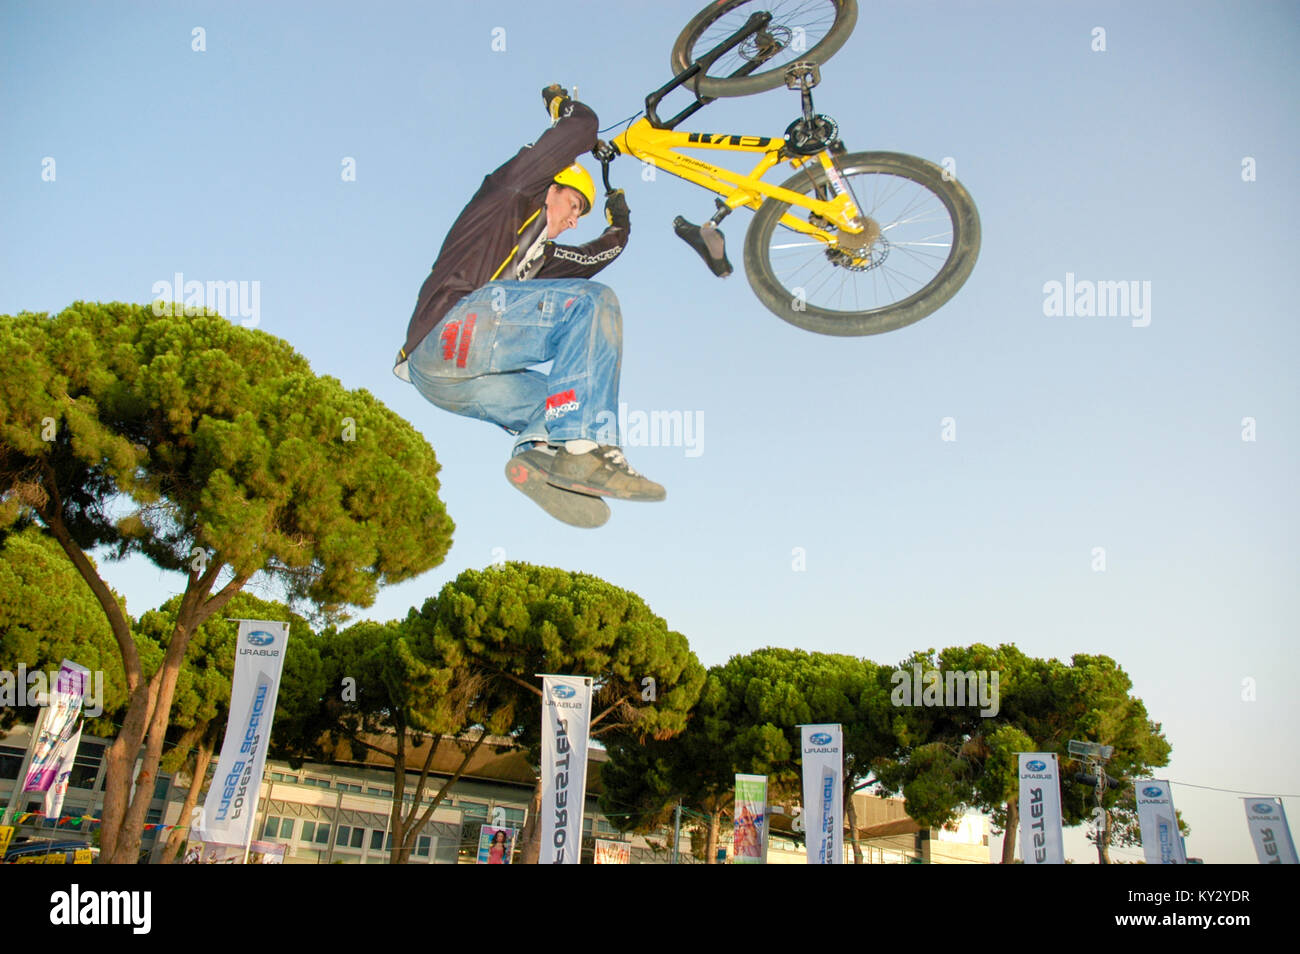 Extreme Bicycle sport jump The rider hanging below the bike - Stock Image